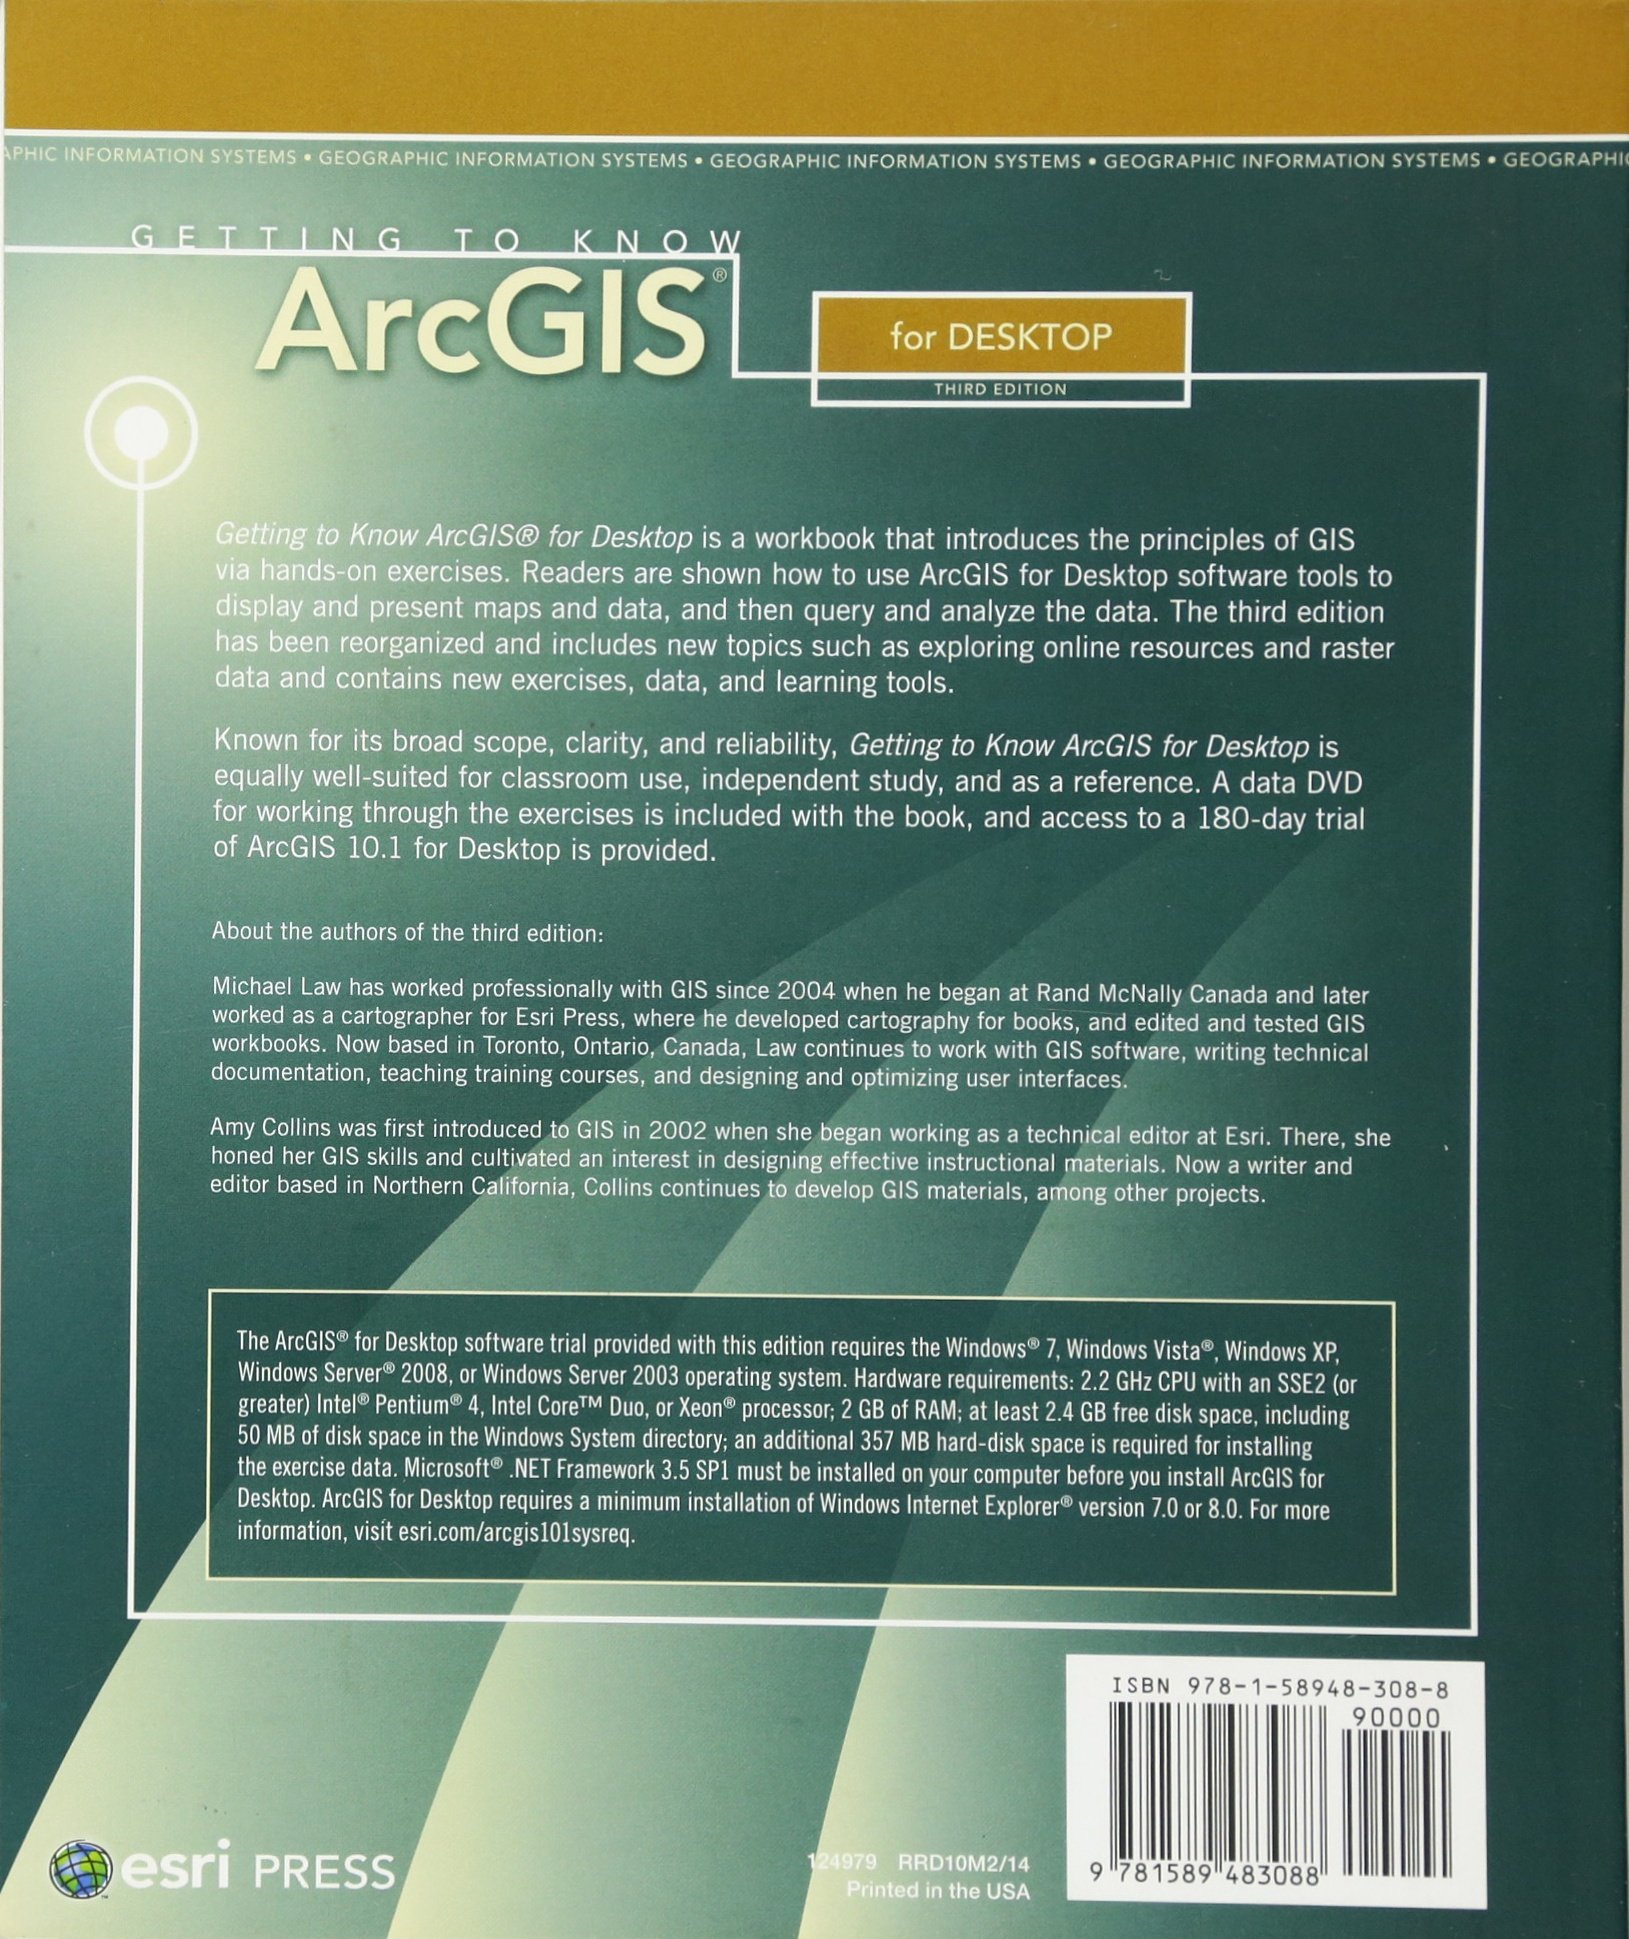 Getting to Know ArcGIS for Desktop: Amazon co uk: Michael Law, Amy